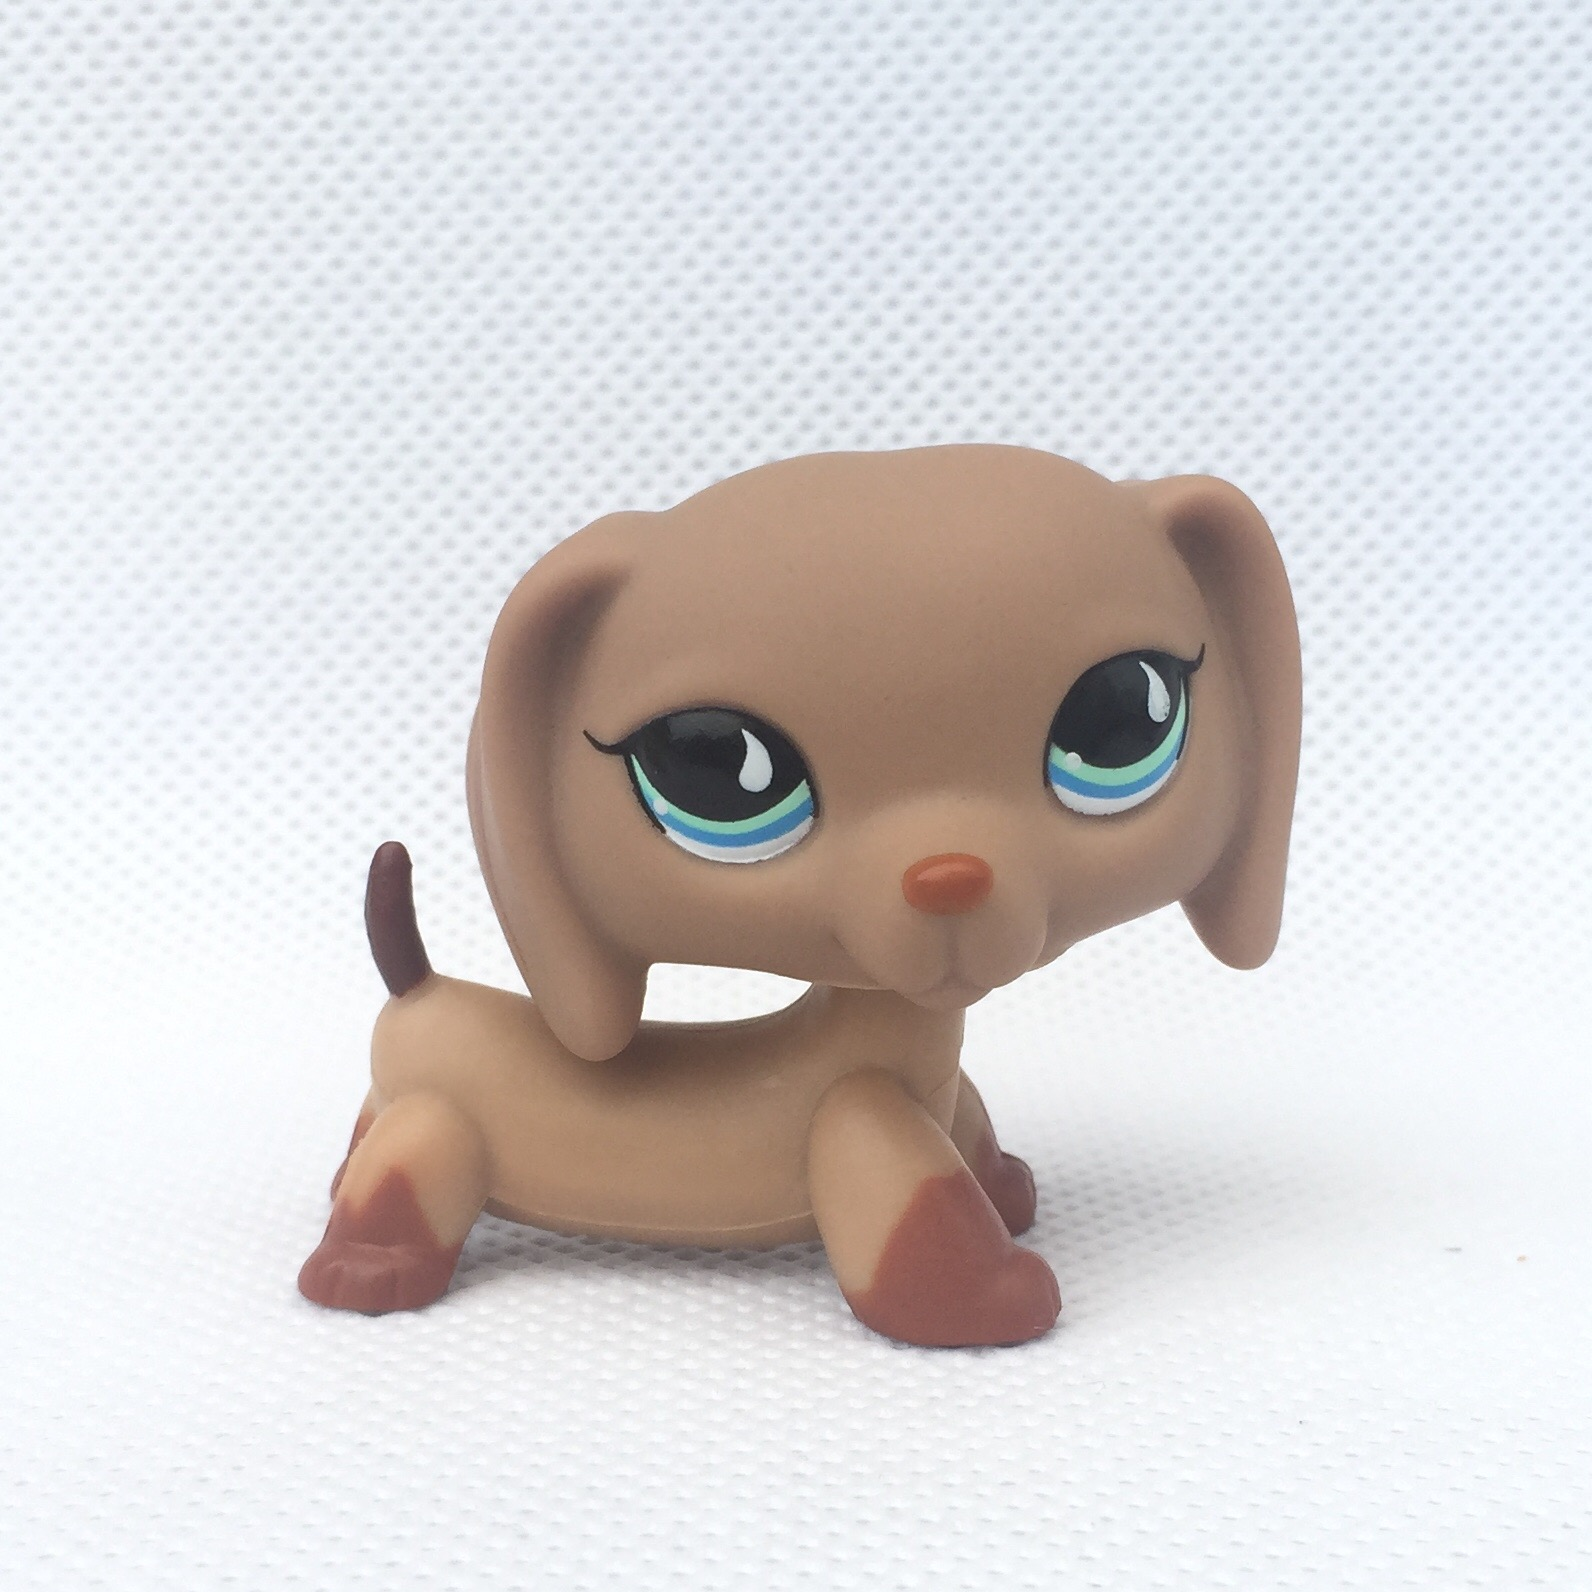 pet shop toys Collection figure Gift Dachshund Wiener Dog Teardrop blue Eyes 2 #518 pet shop toys dachshund 932 bronw sausage dog star pink eyes